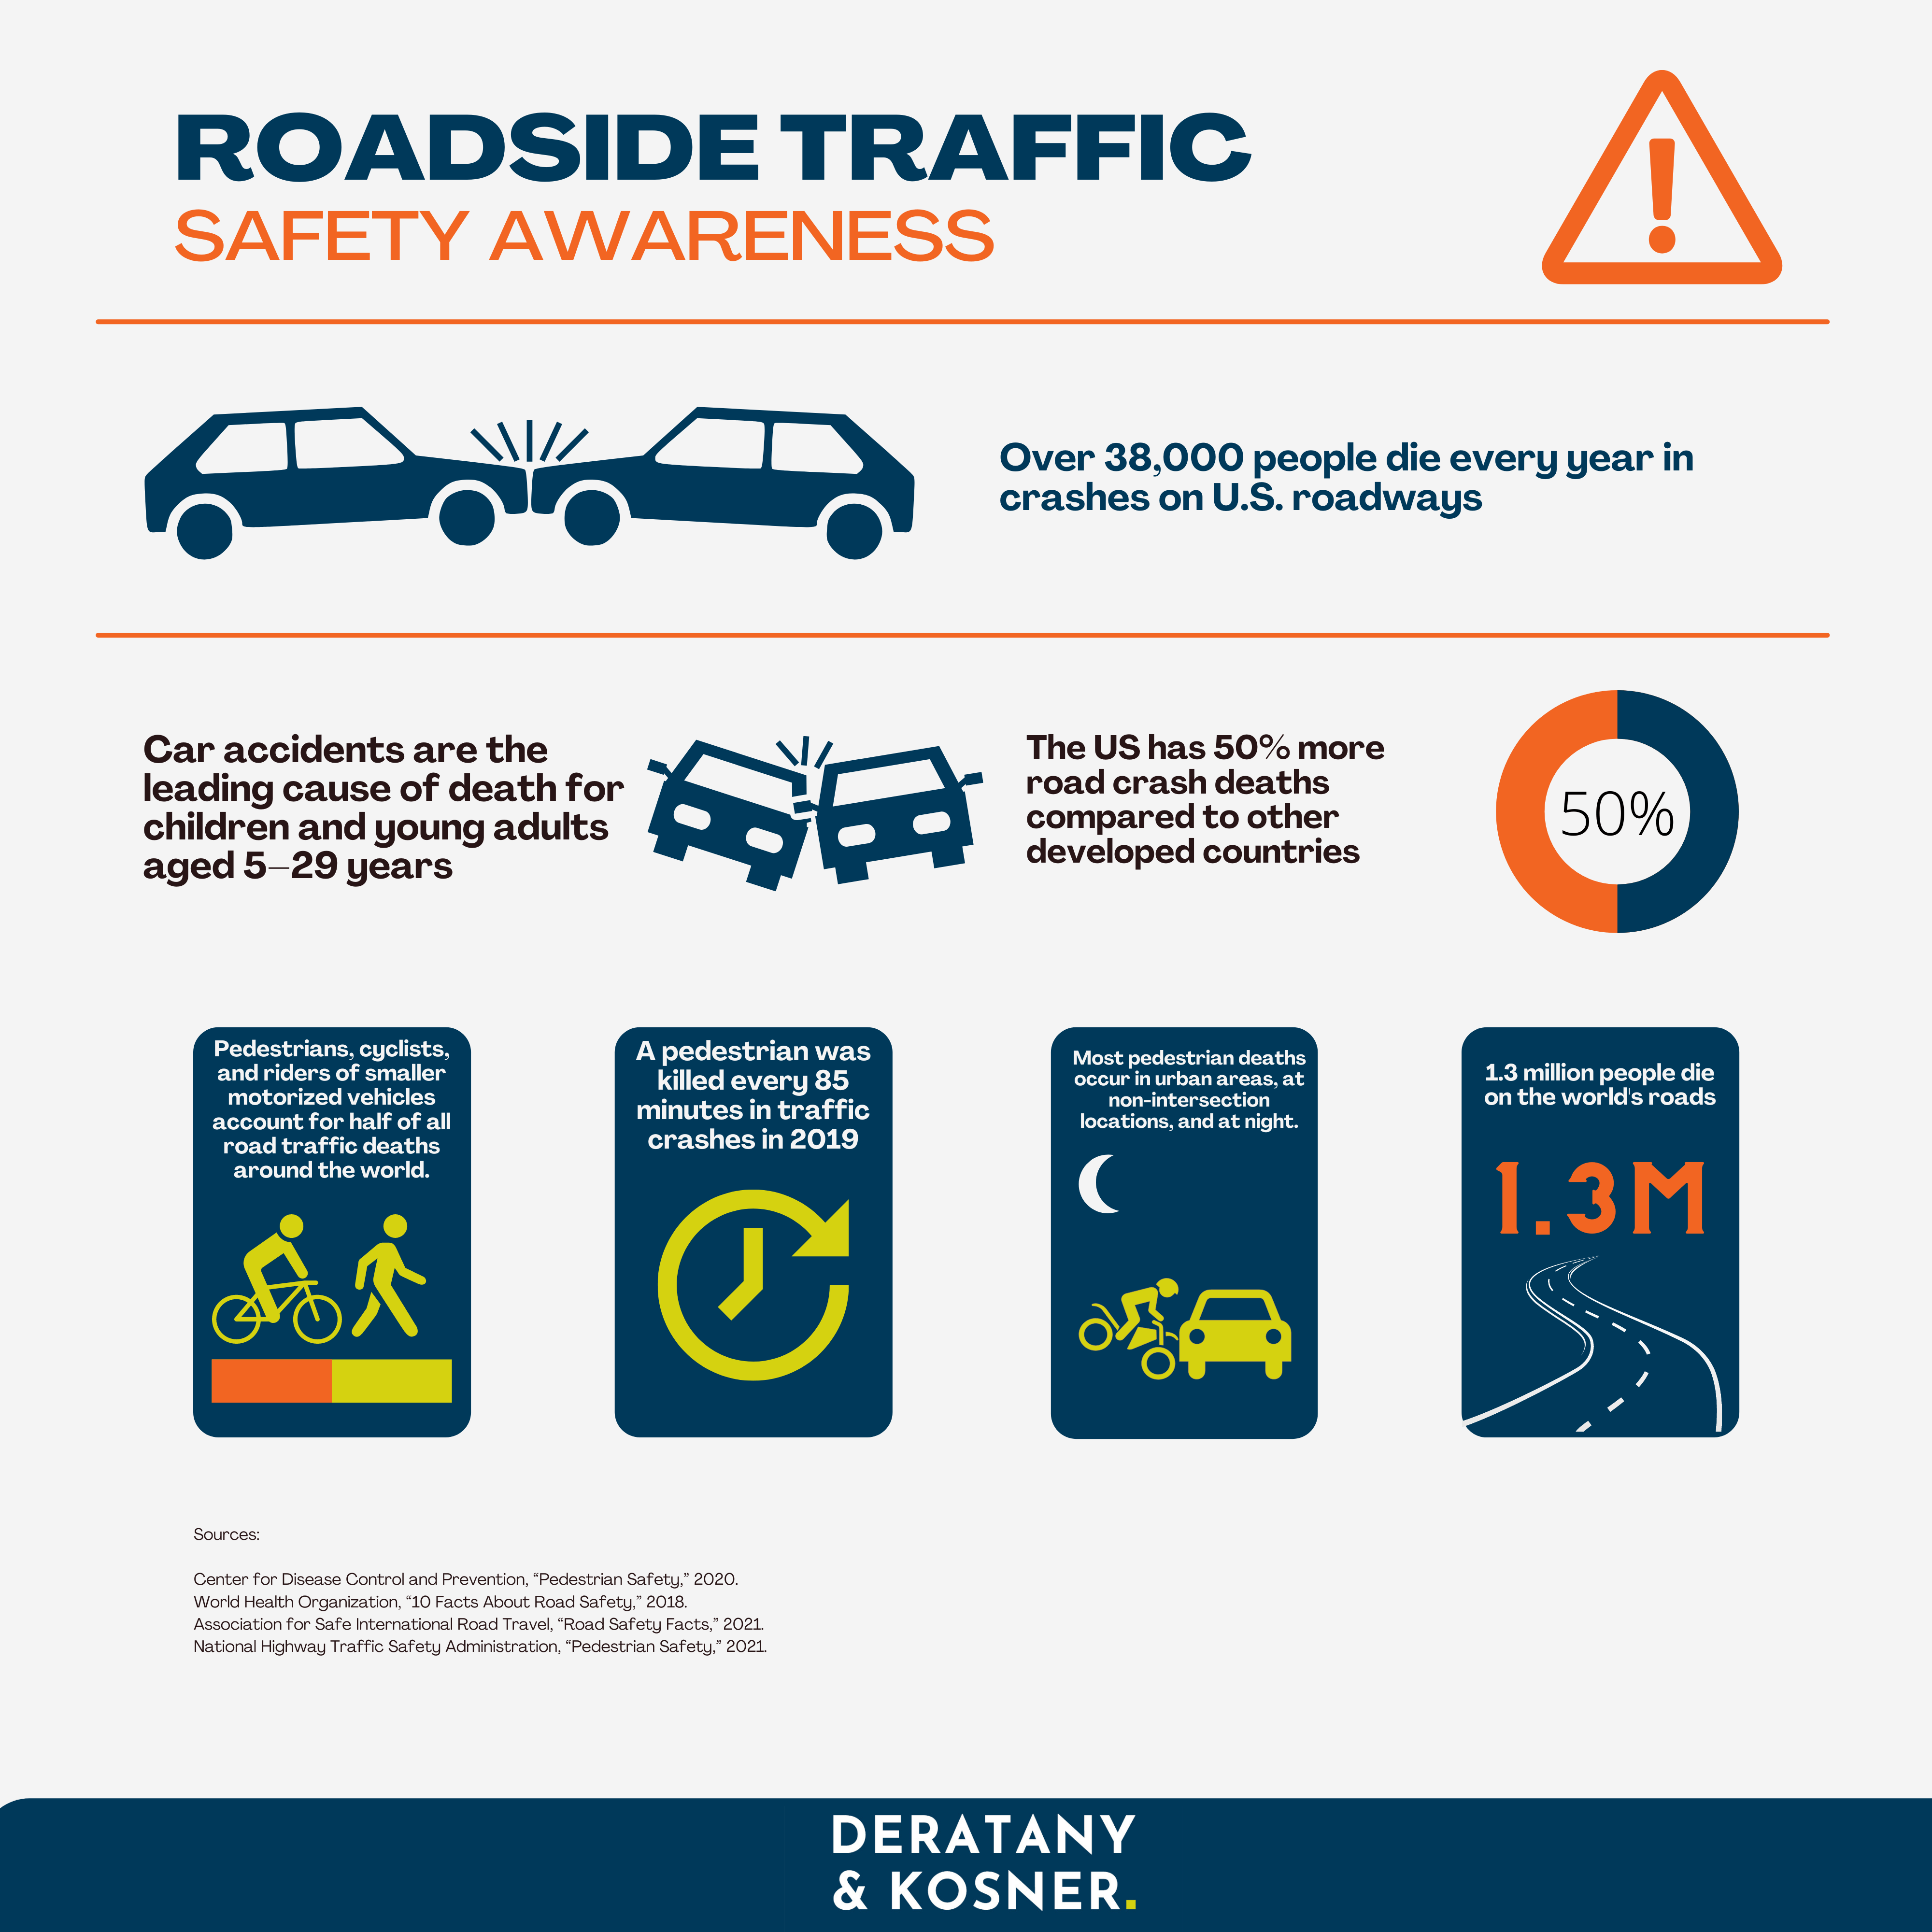 Roadside Traffic Safety Awareness infographic